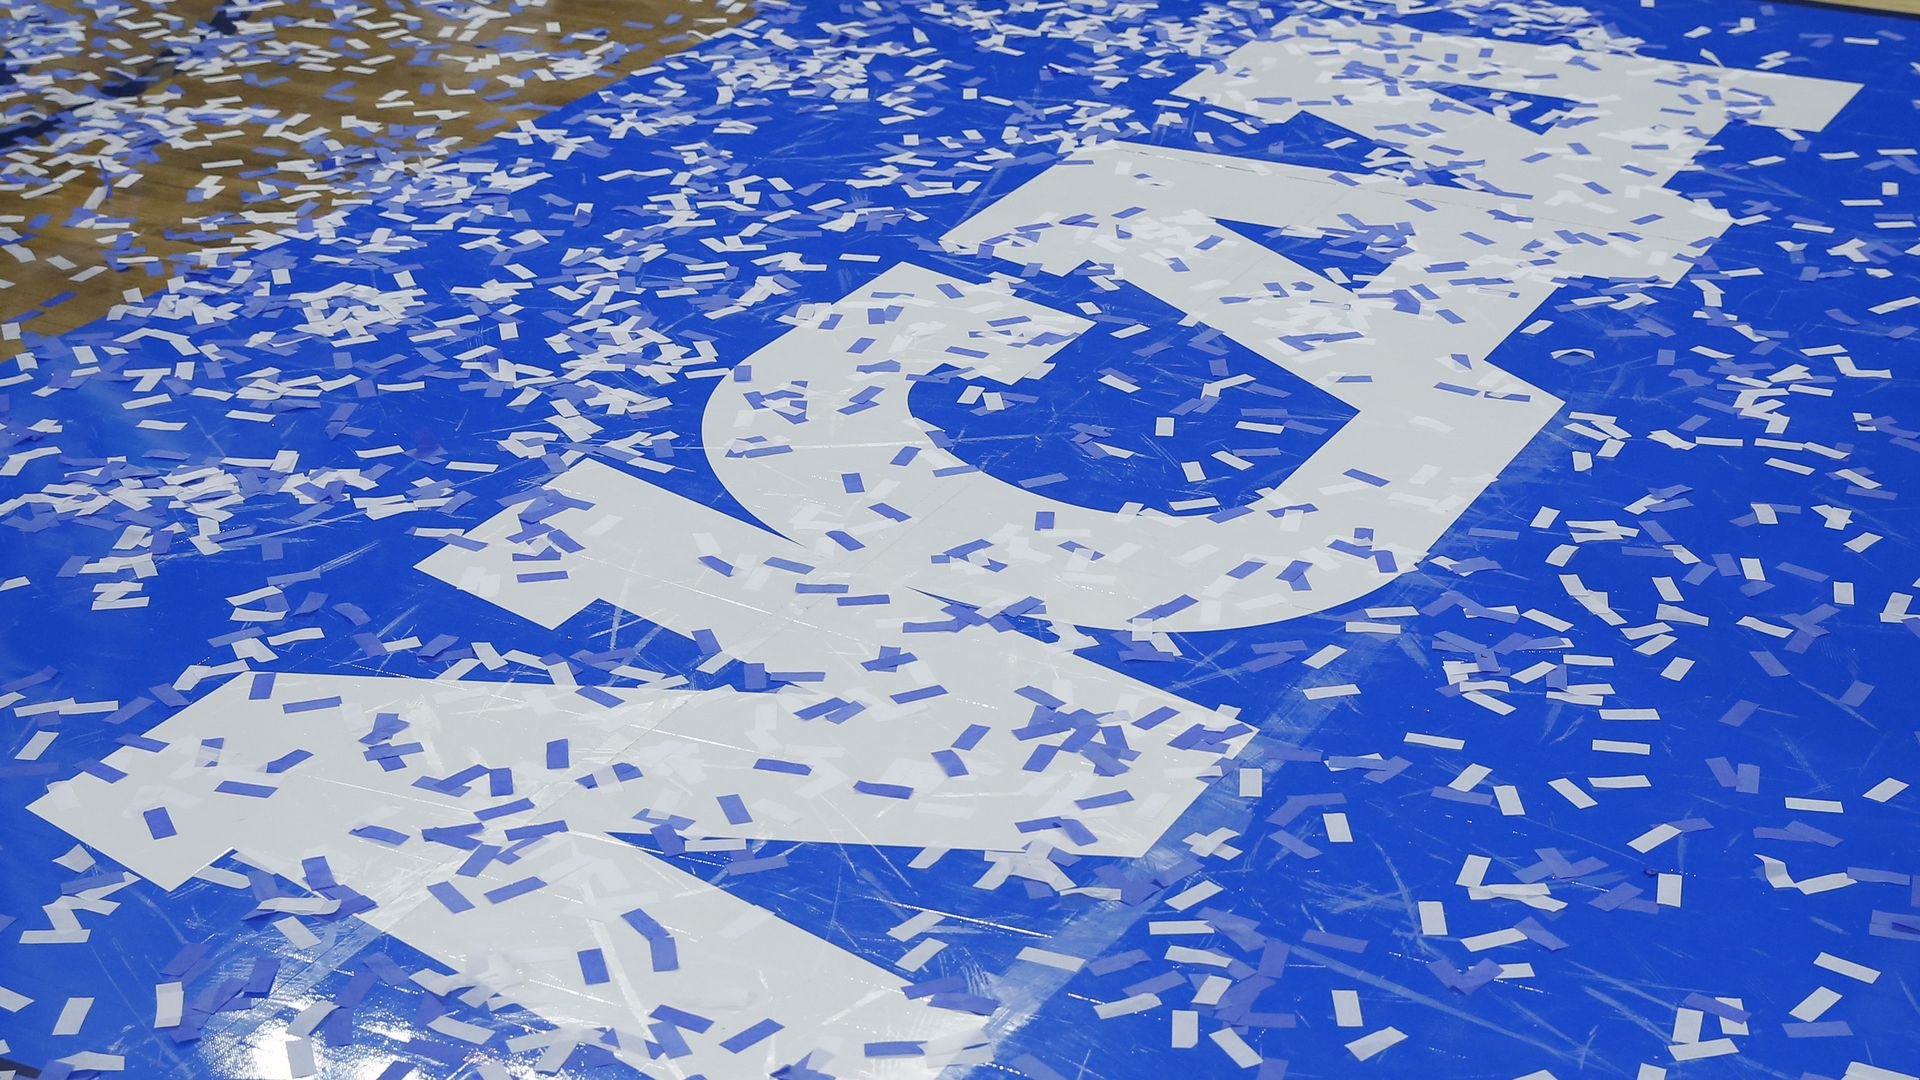 In this image, the blue and white block letter logo for NCAA is on the floor of a basketball court as confetti falls onto the floor.